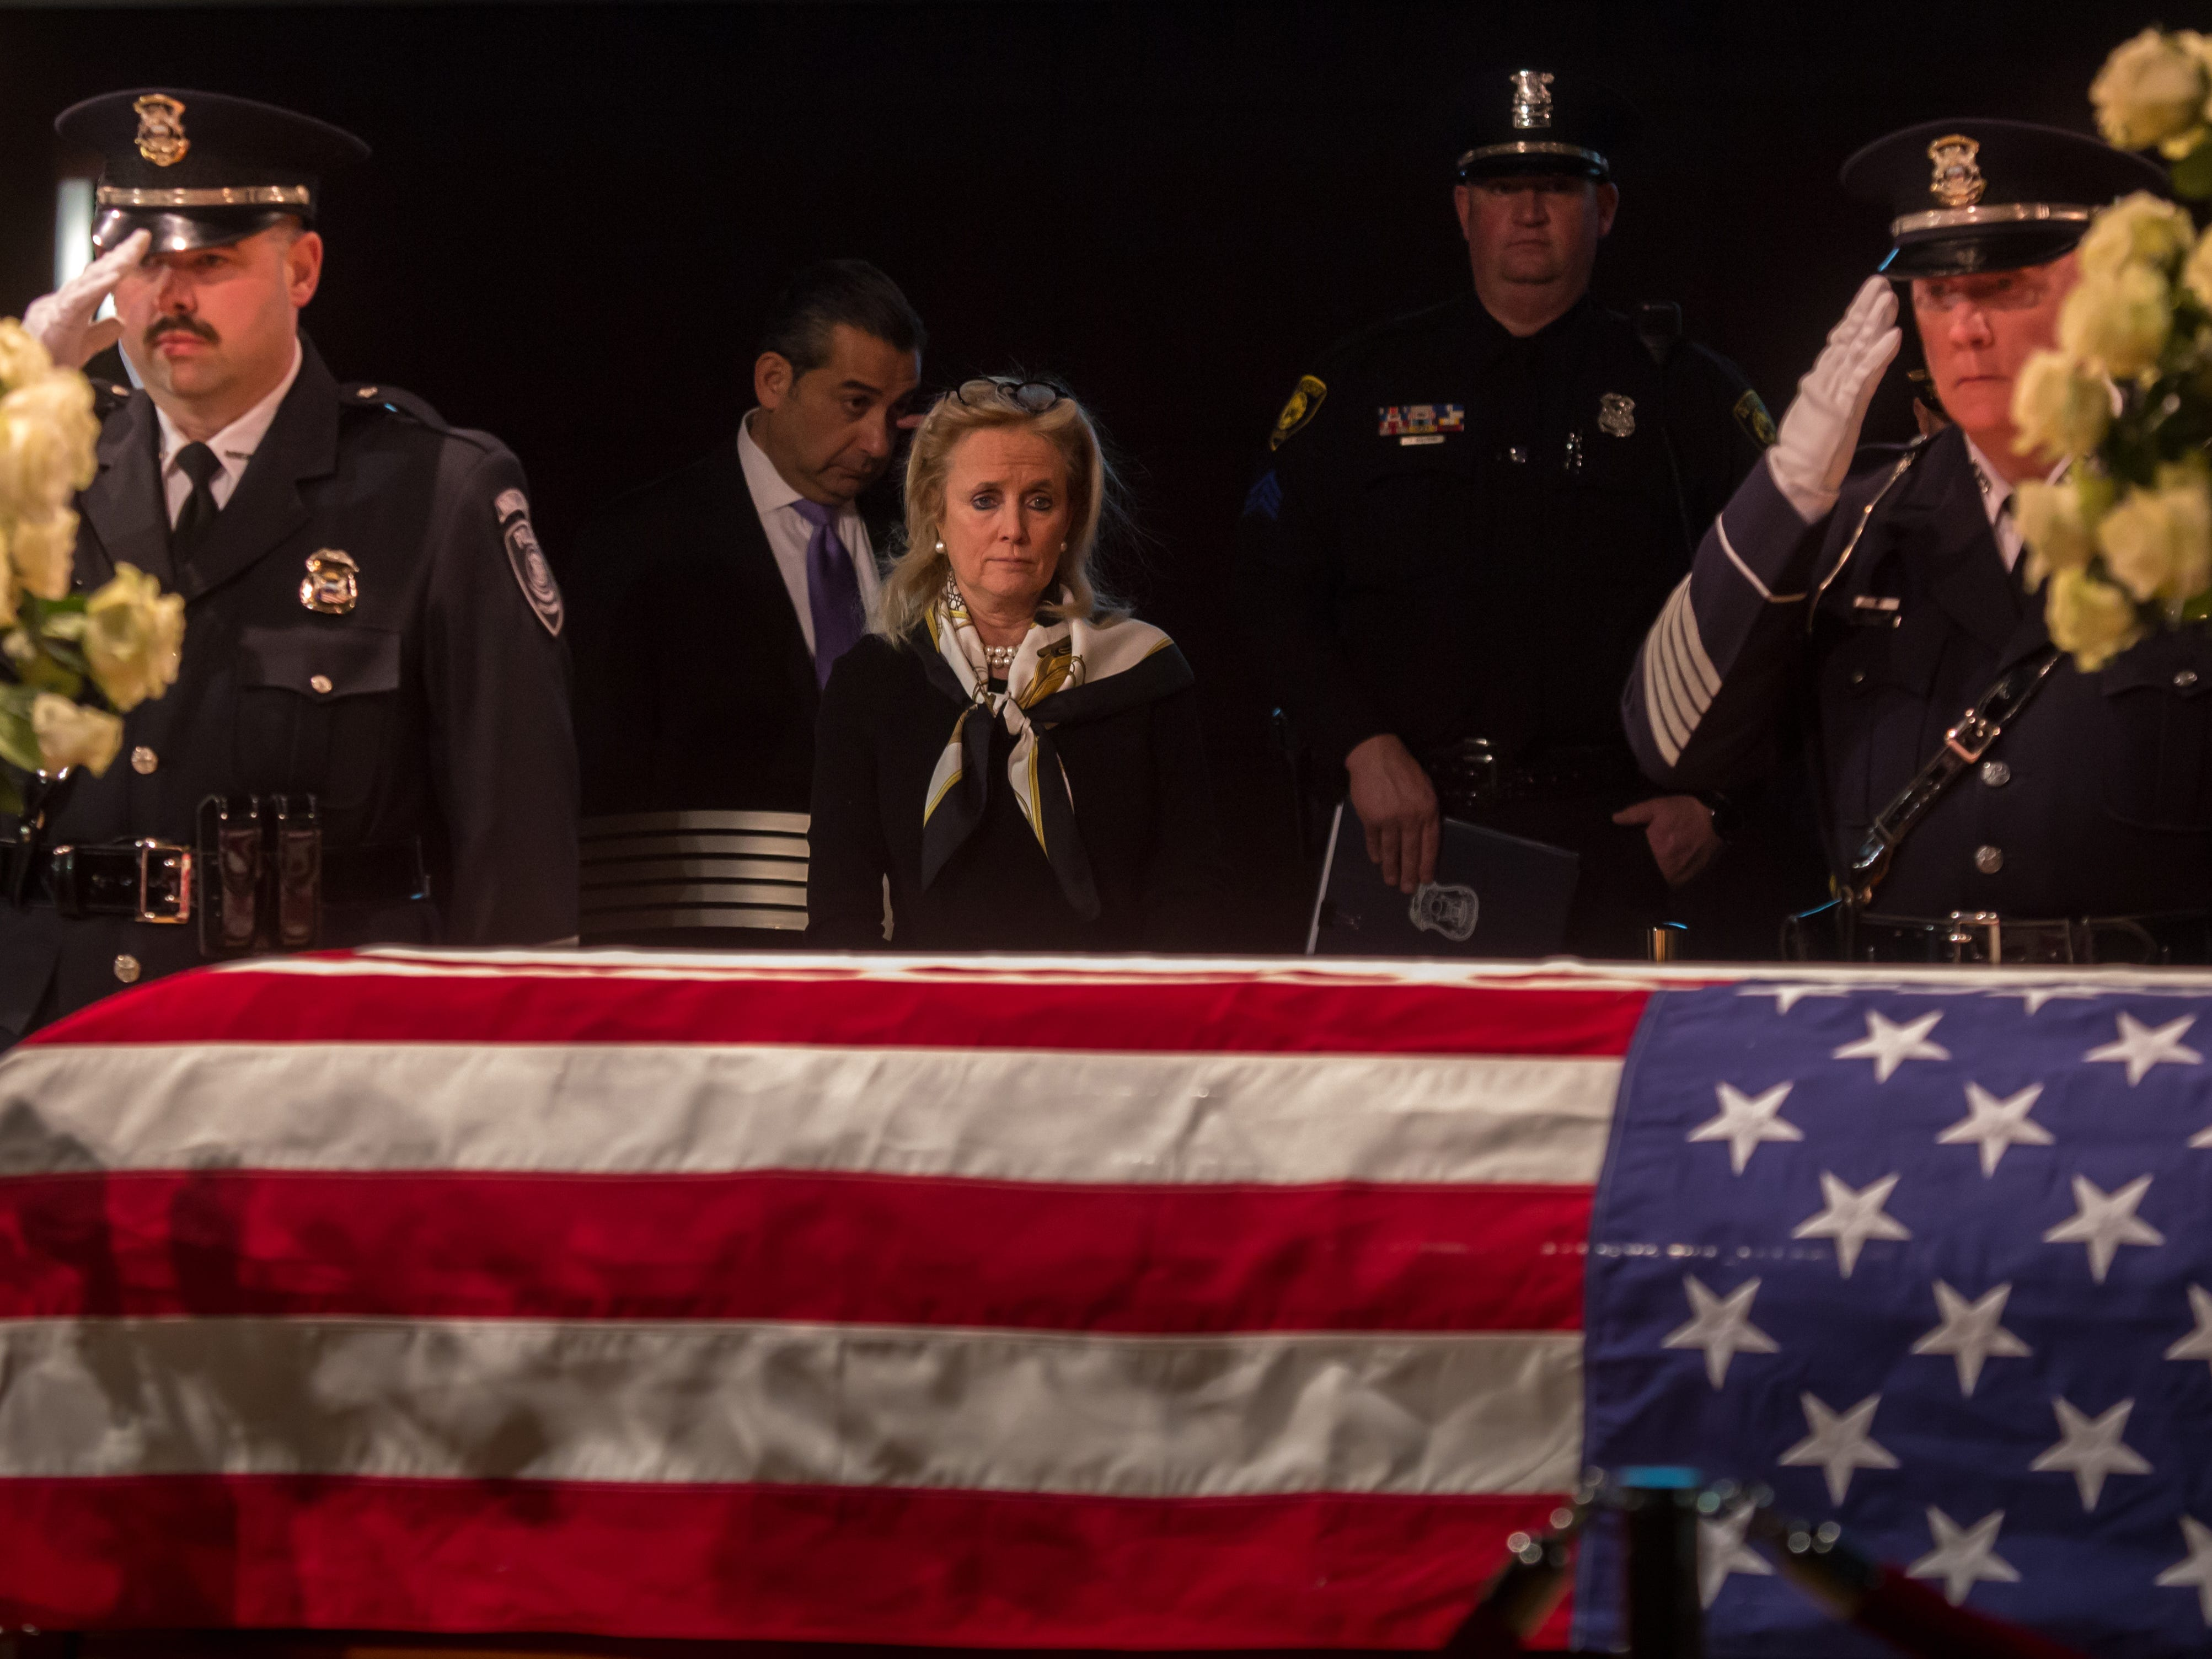 Rep. Debbie Dingell stands by the casket of her late husband former US Representative John D. Dingell during his visitation at the Ford Community and Performing Arts Center in Dearborn on Monday, February 11, 2019.